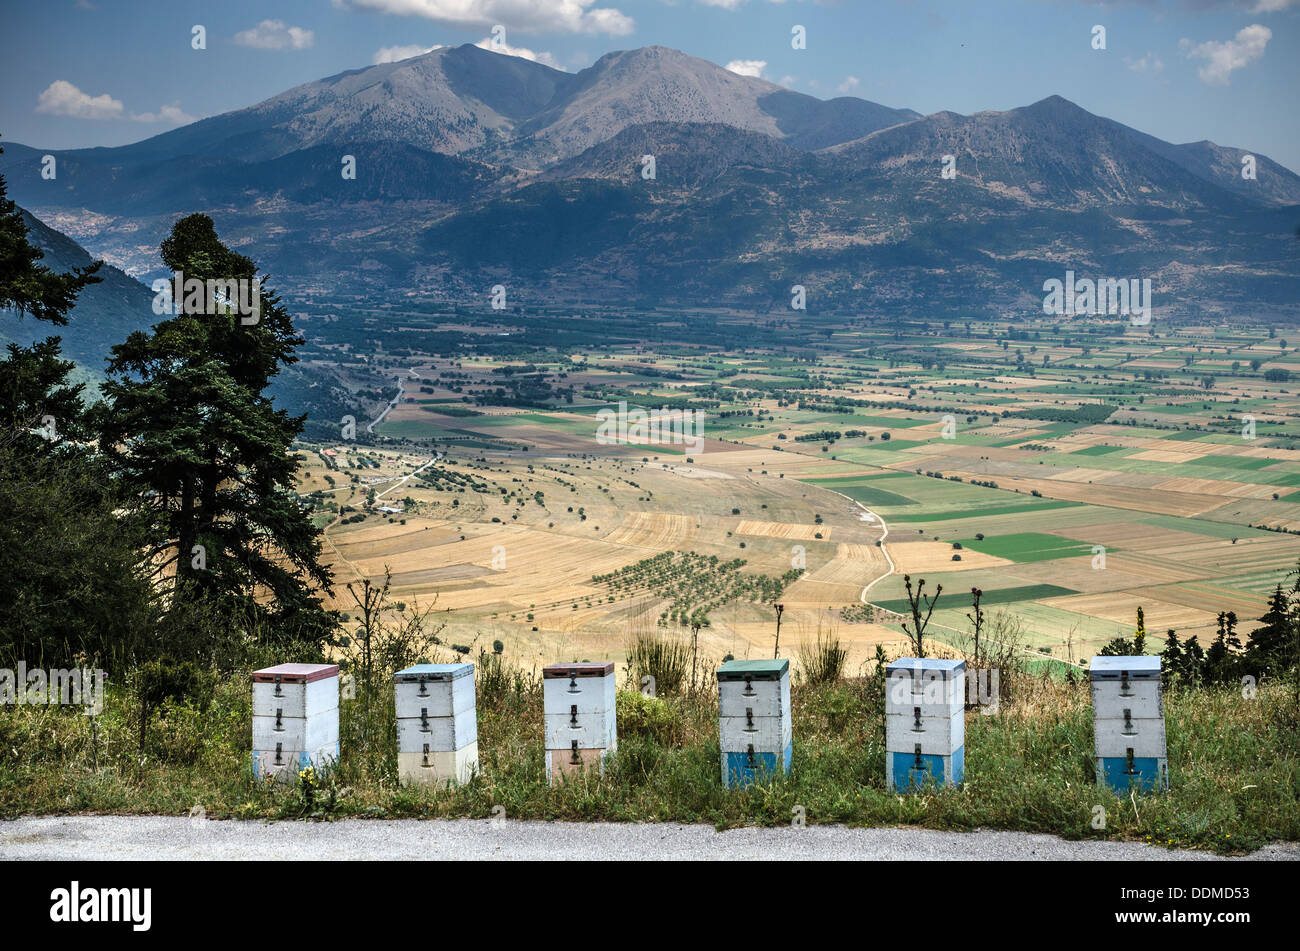 Beehives on the slopes above the Pheneos valley with Mount Kyllini (Ziria) in the background, Corinthia, Peloponnese, Greece - Stock Image